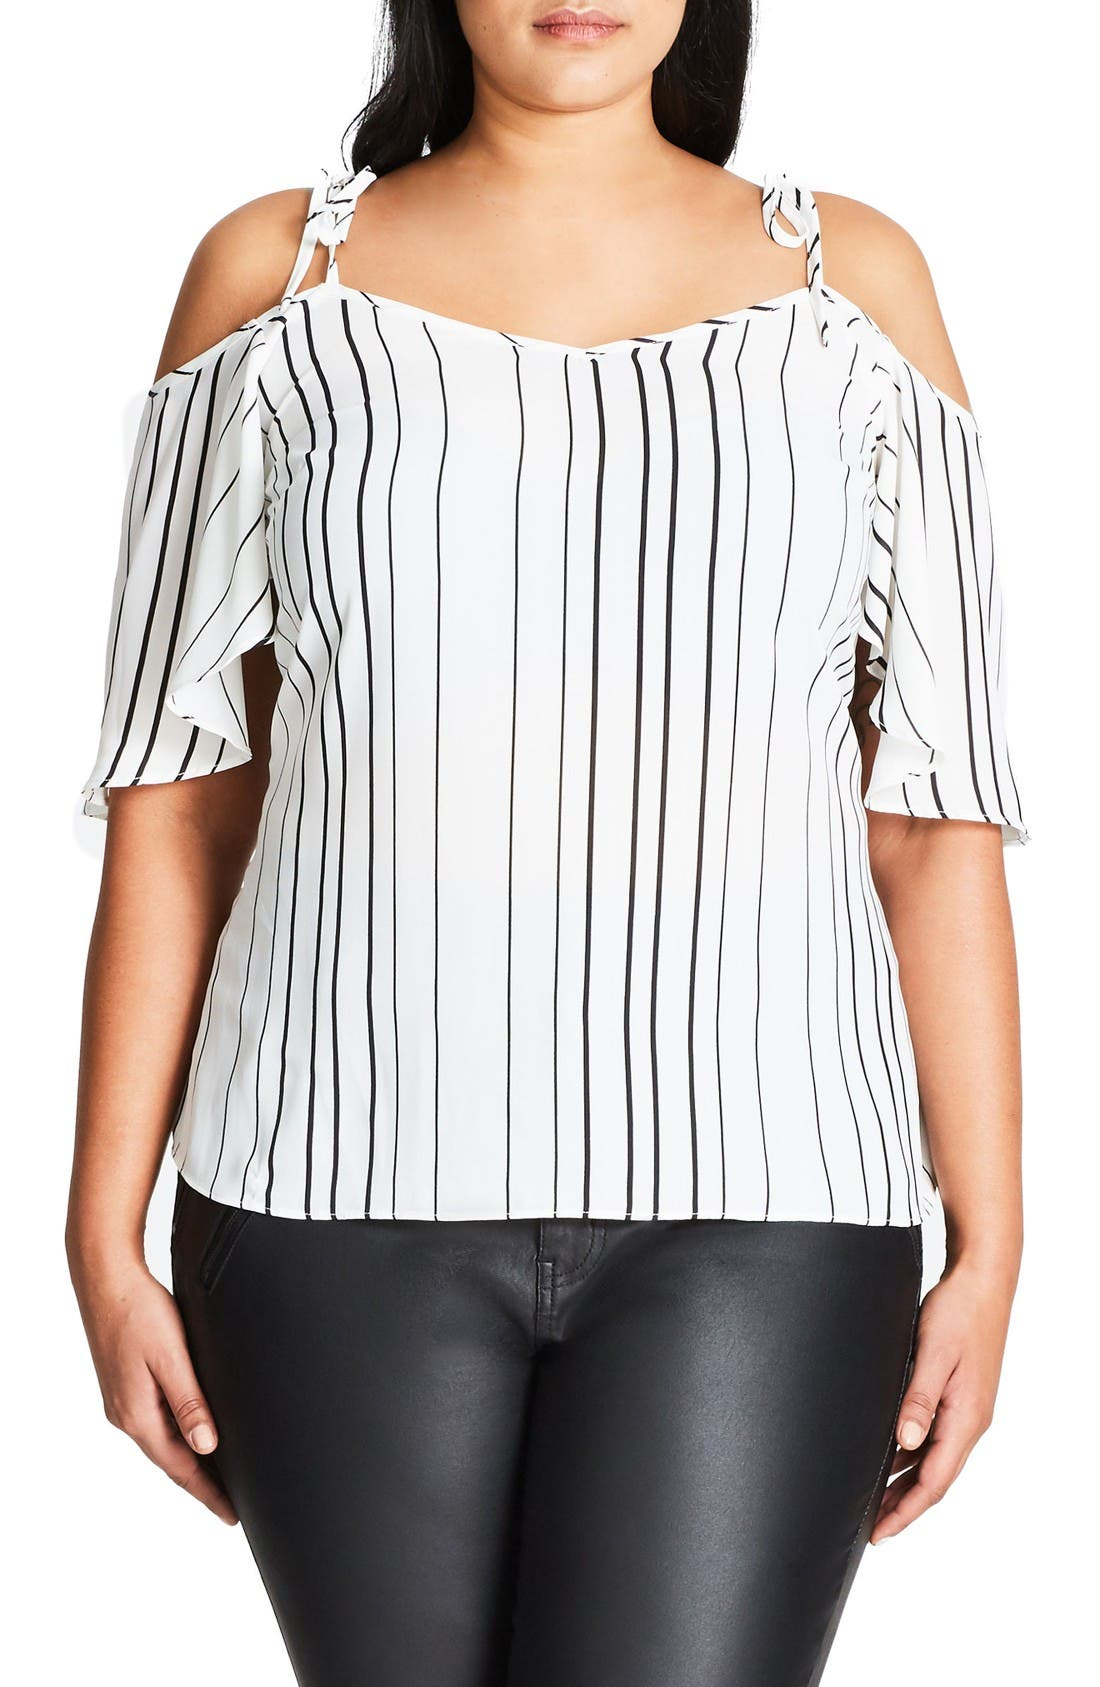 CITY CHIC Uneven Stripe Cold Shoulder Top